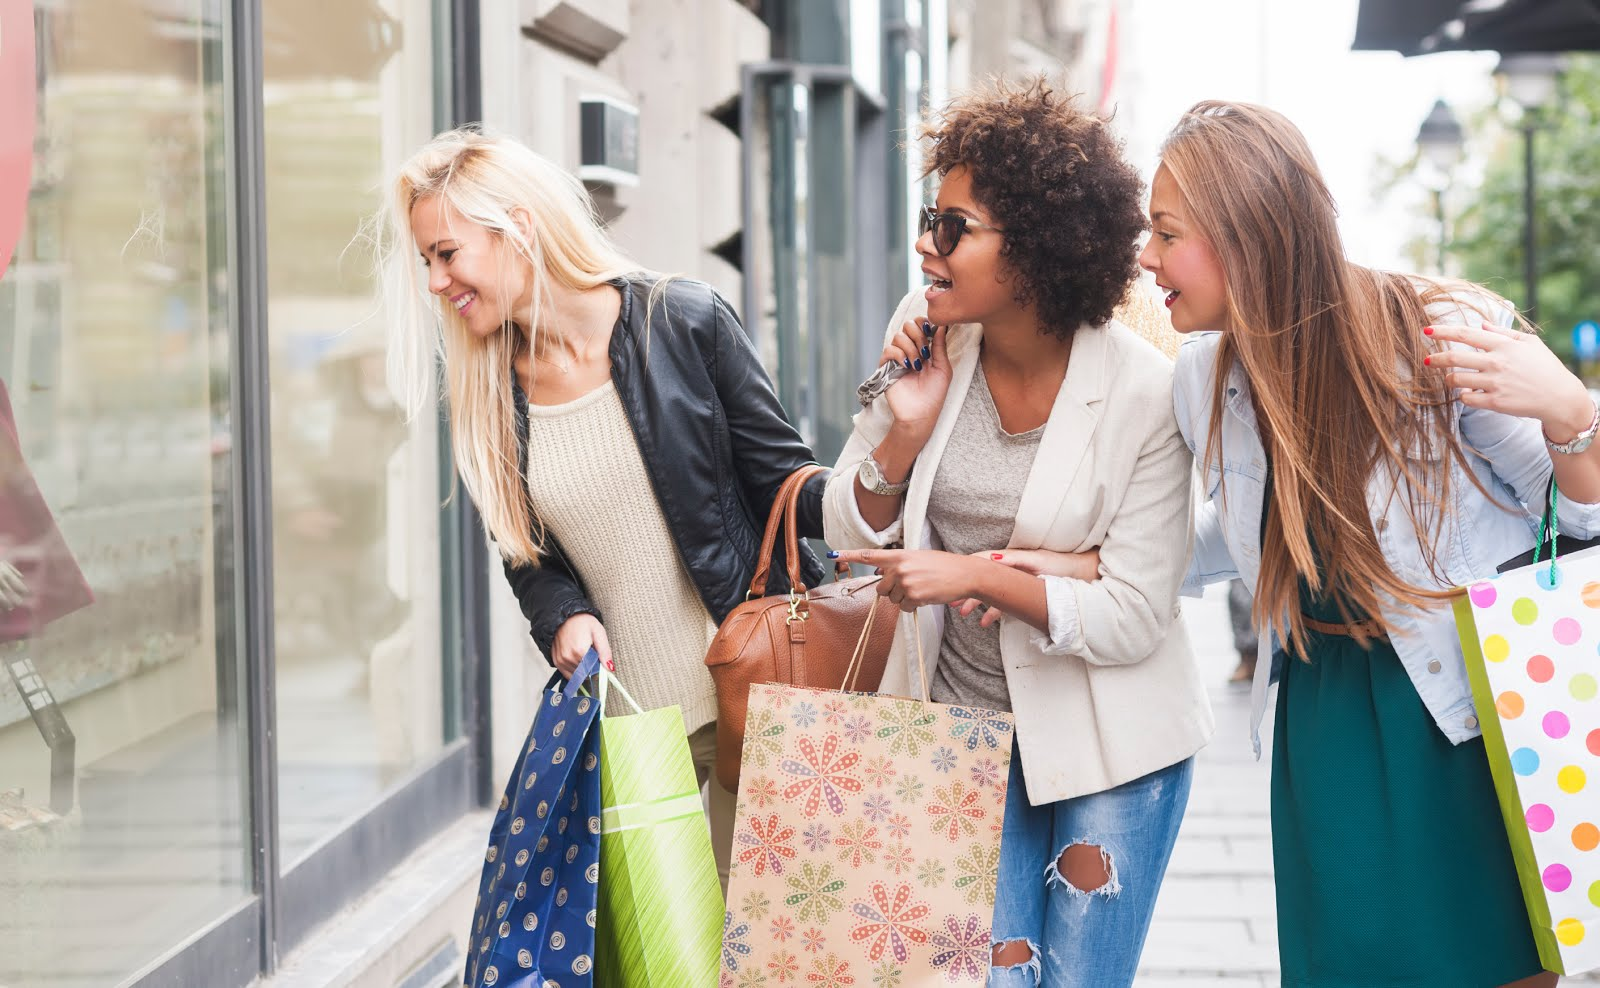 Take the worry out of clothes shopping